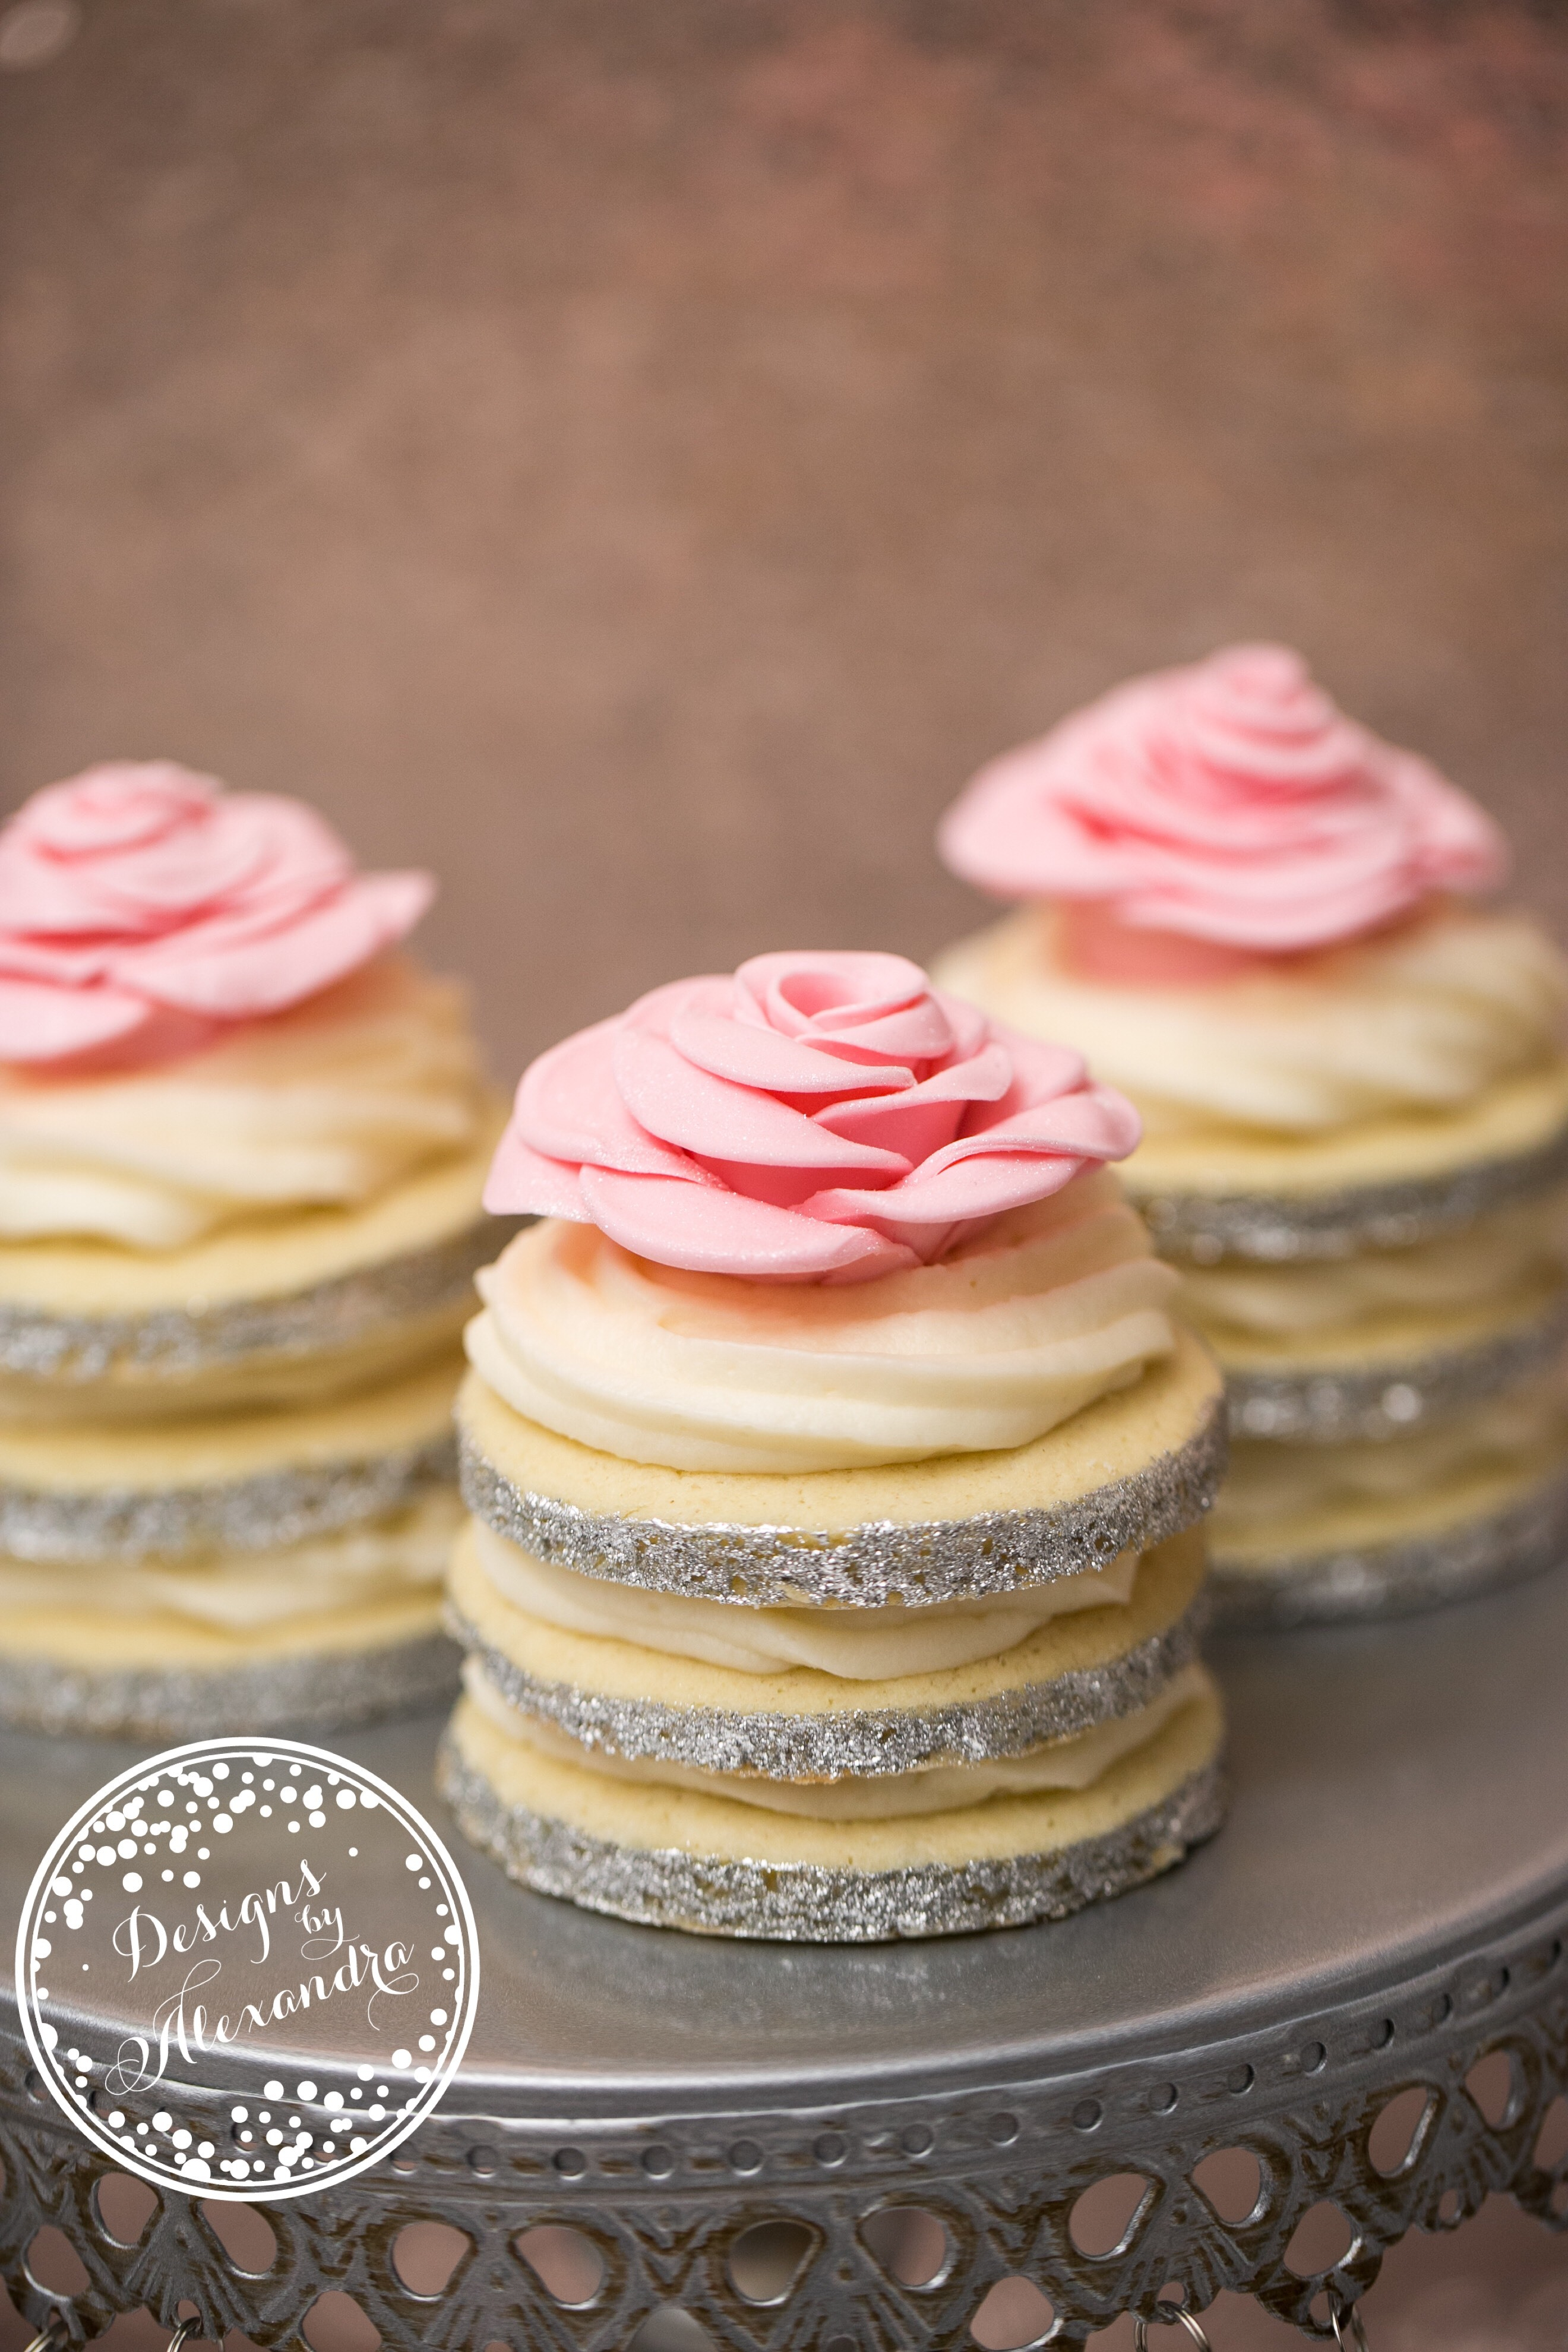 Pink and Silver petite fours with sugar flower